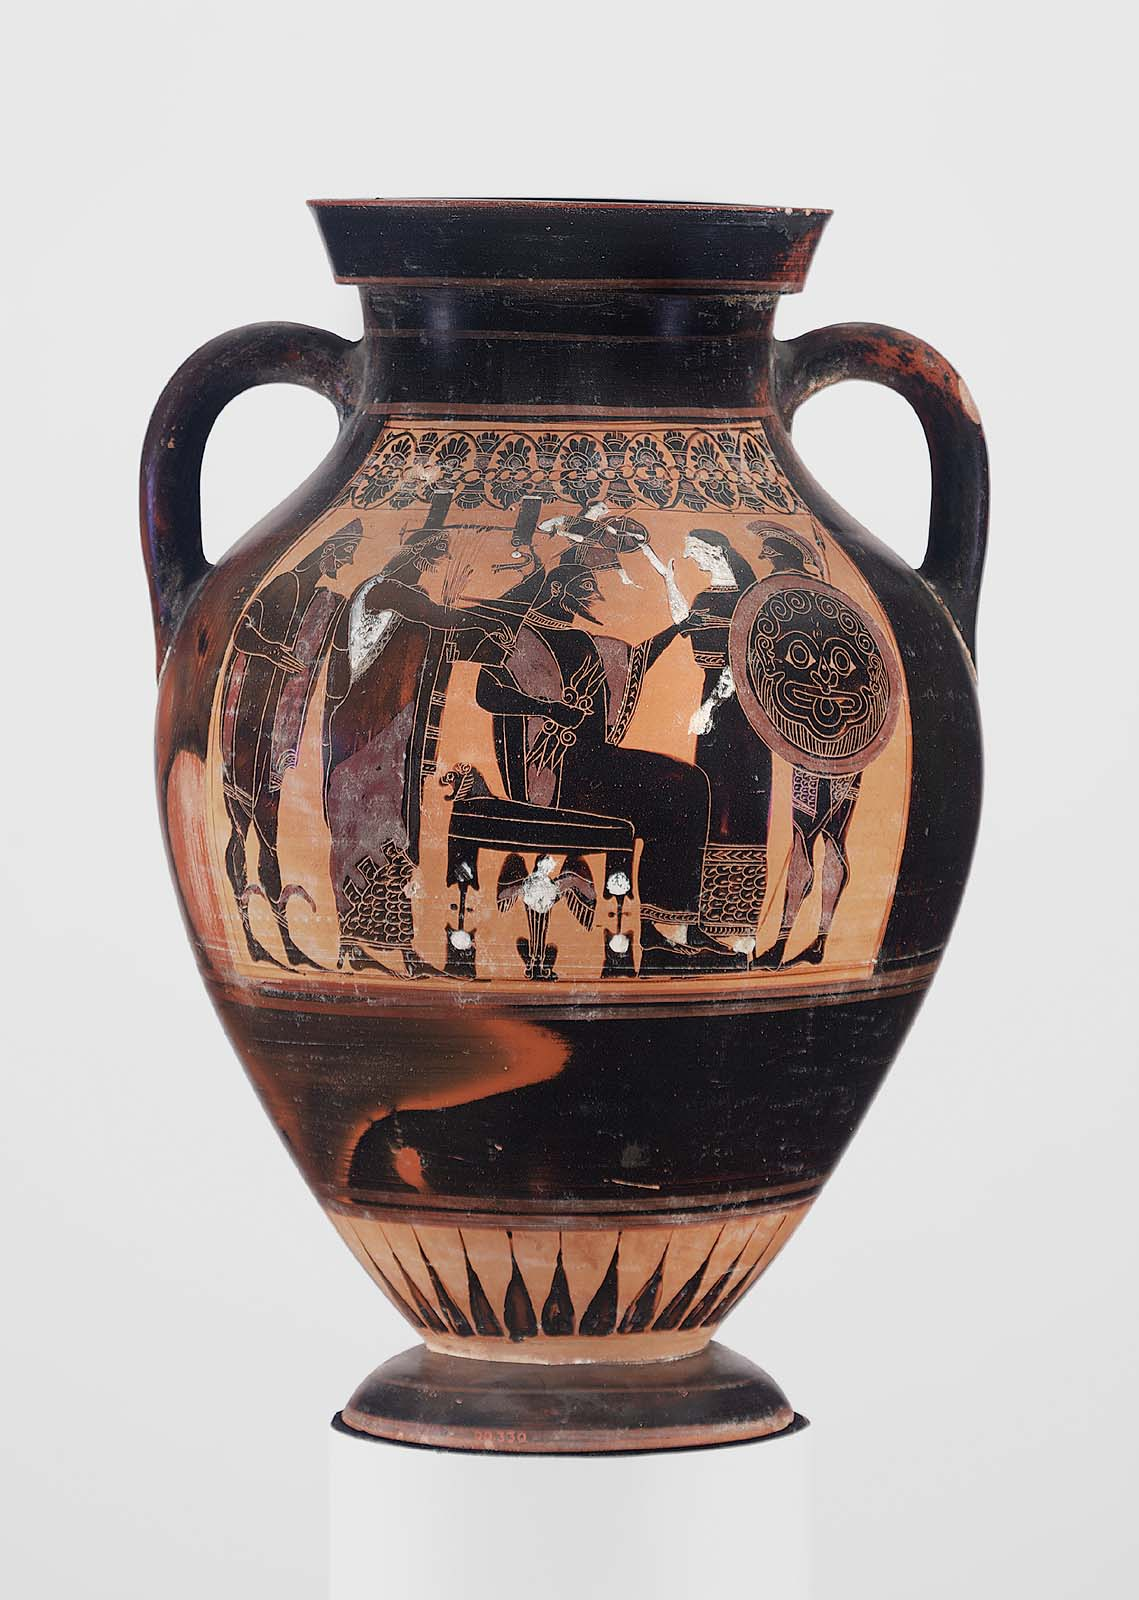 Two Handled Jar Amphora Depicting The Birth Of Athena